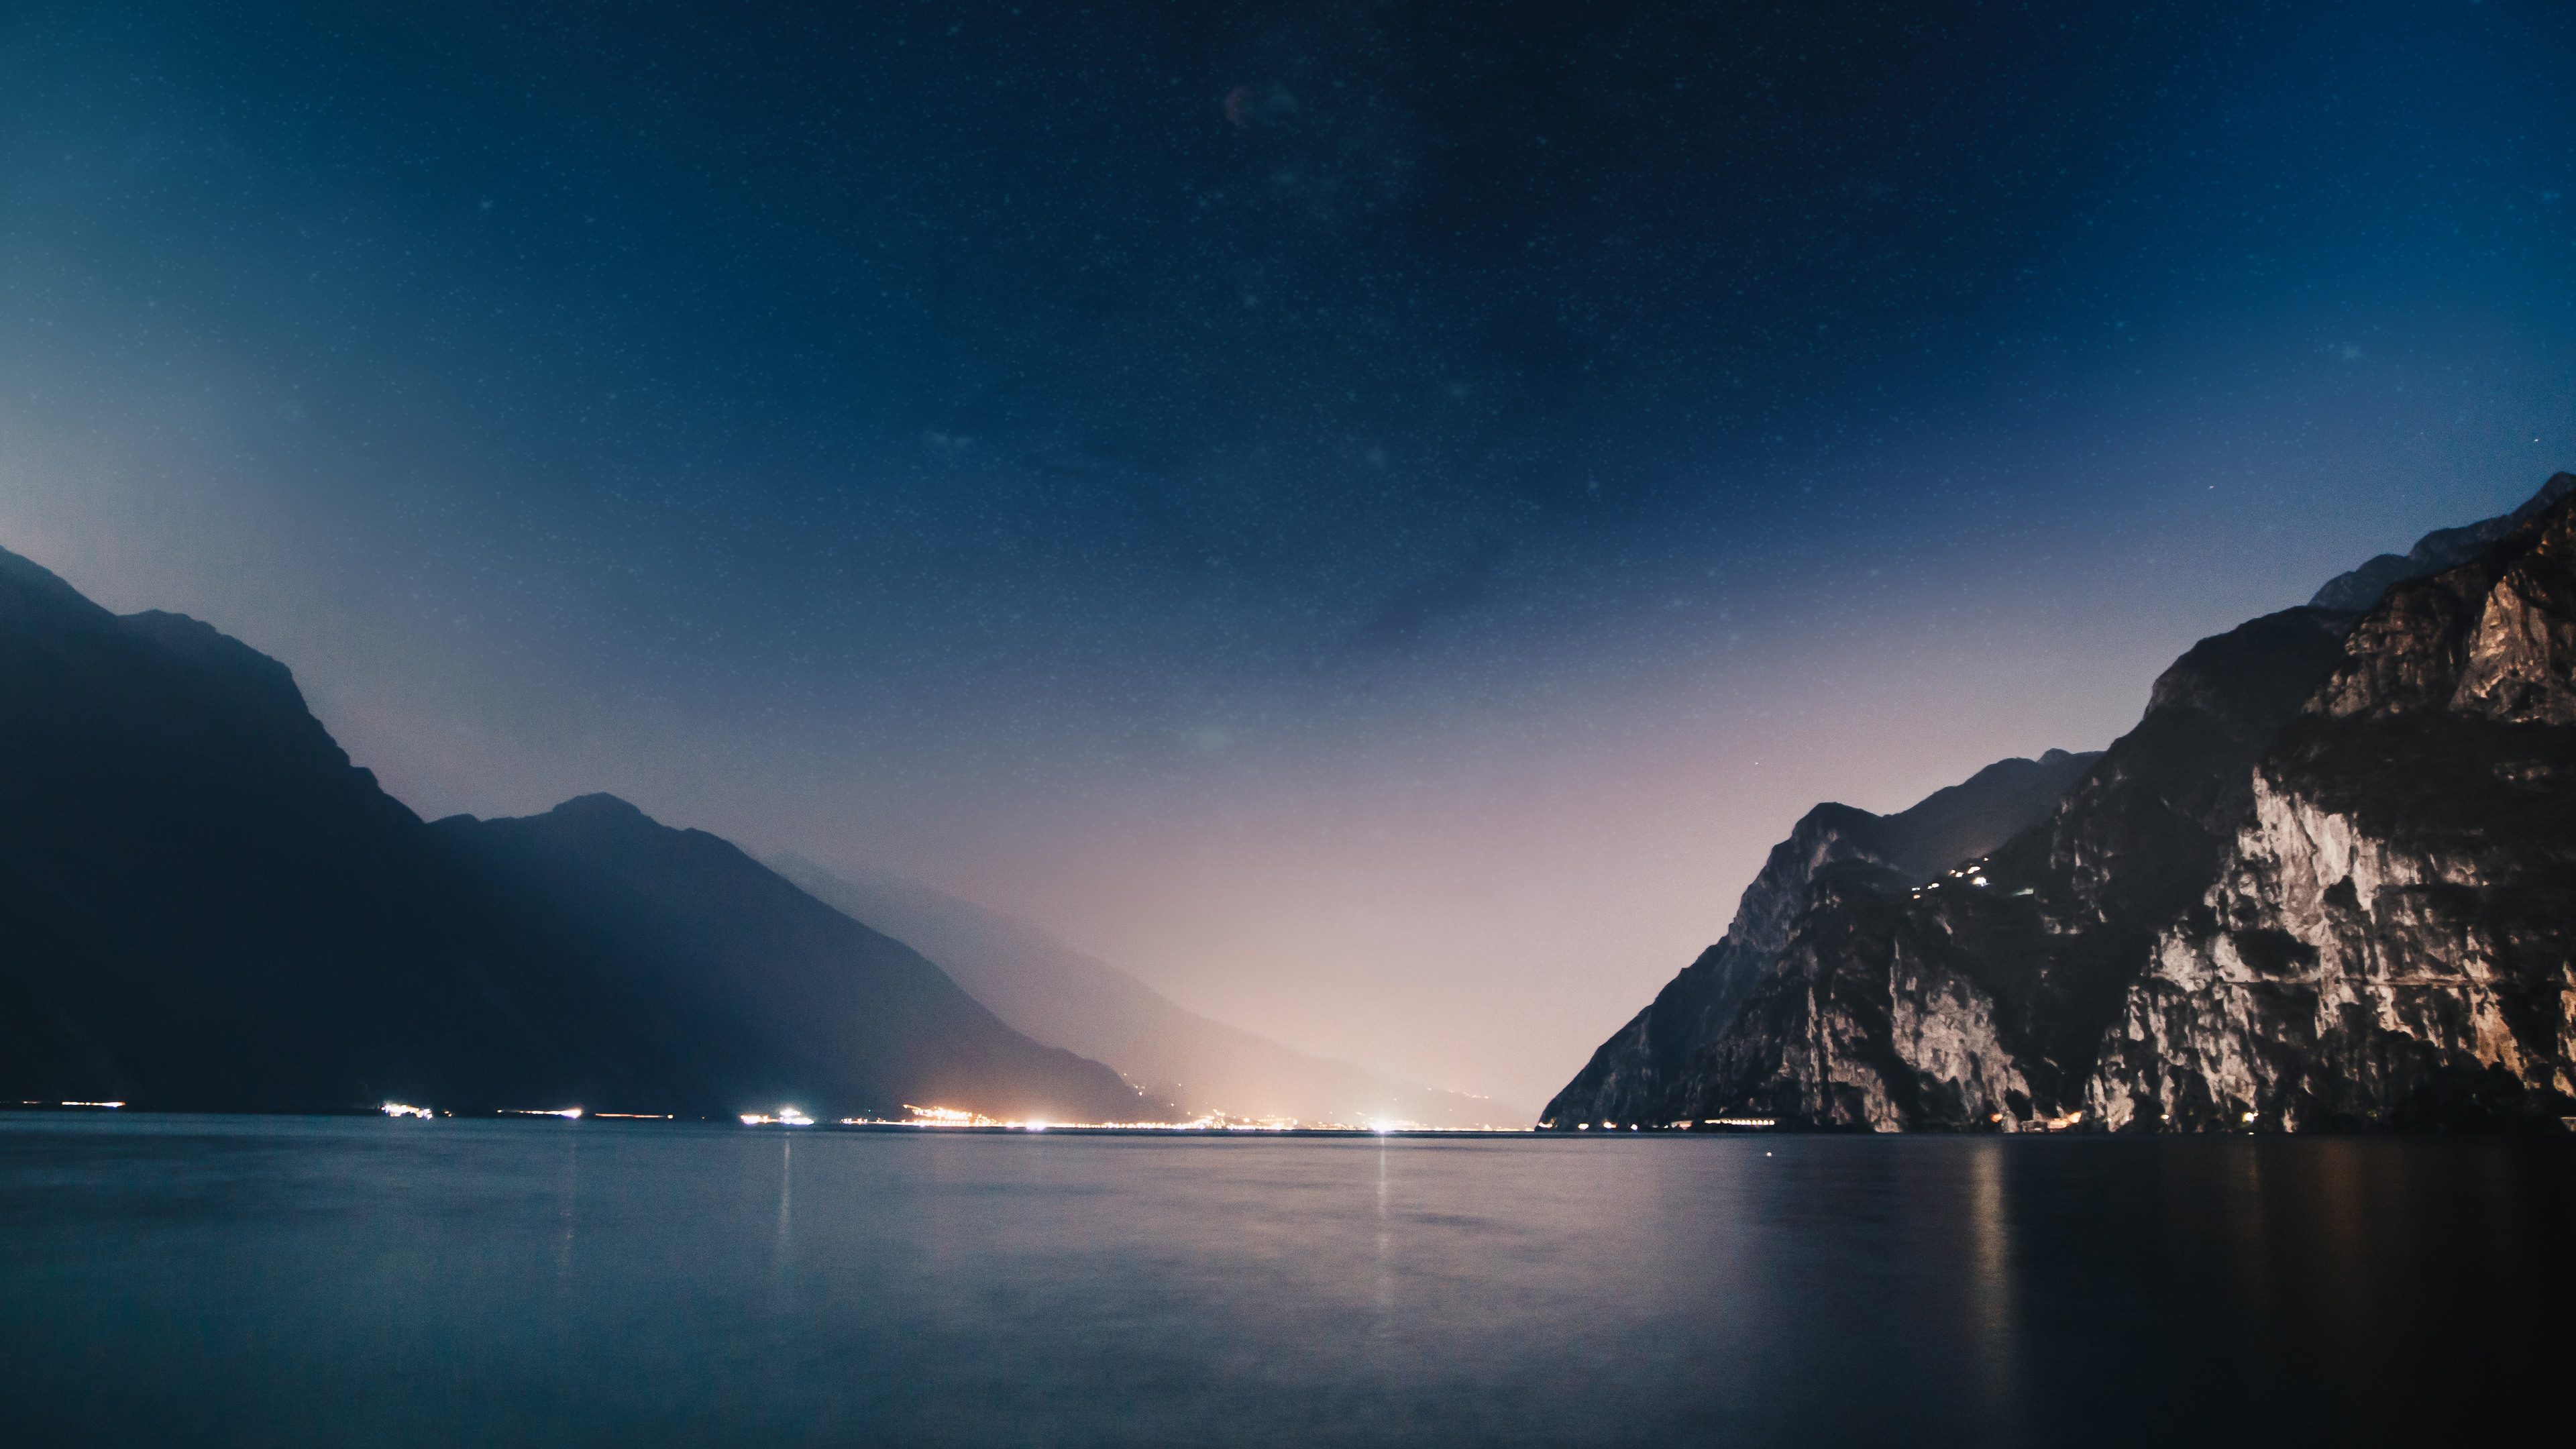 mountains night sea 4k 5k 1540132871 - Mountains Night Sea 4k 5k - sky wallpapers, photography wallpapers, night wallpapers, mountains wallpapers, hd-wallpapers, 5k wallpapers, 4k-wallpapers